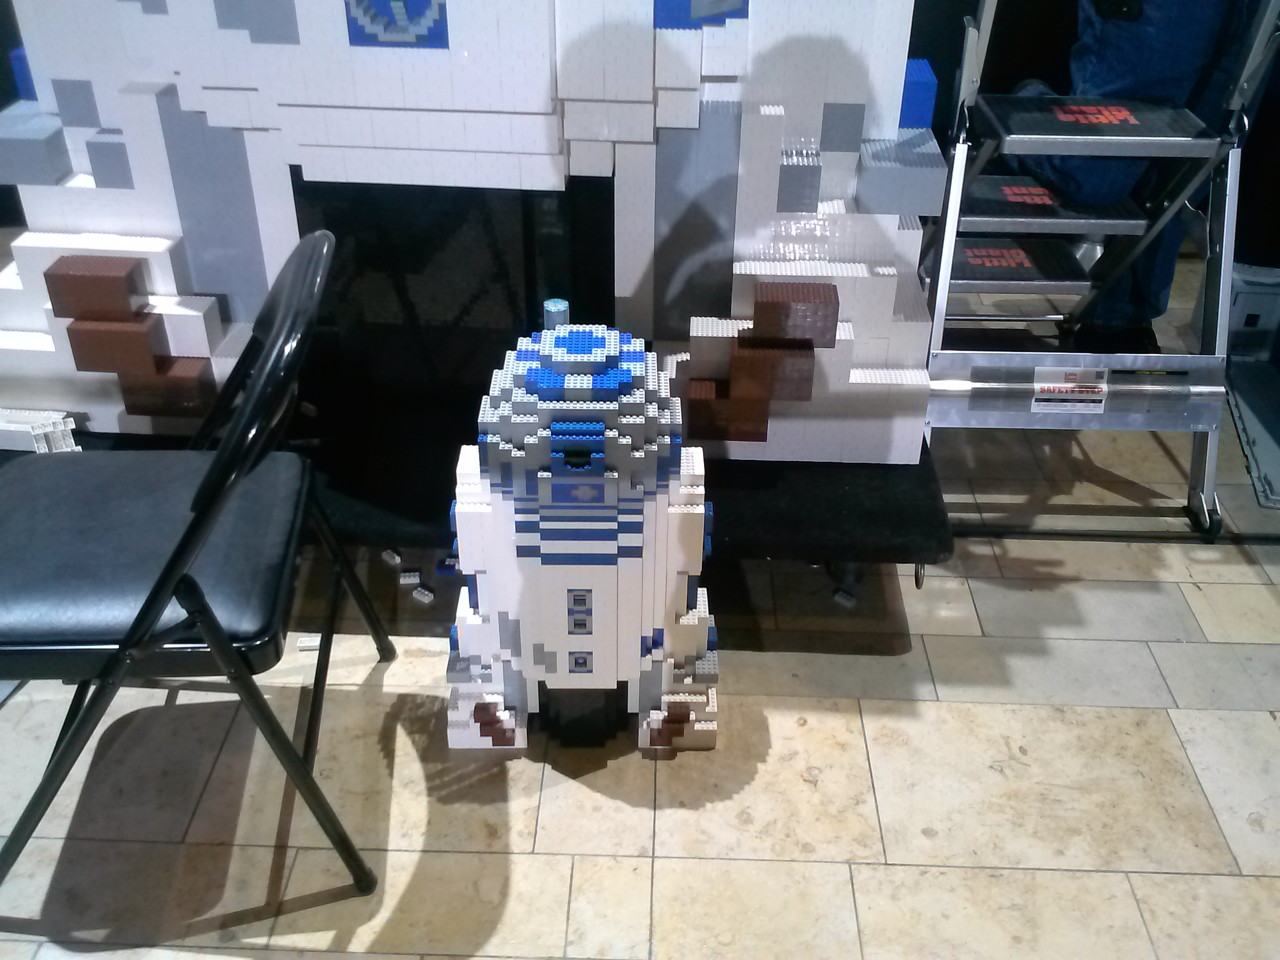 R2-D2 Model and 8' R2-D2 Under Construction April 27, 2014